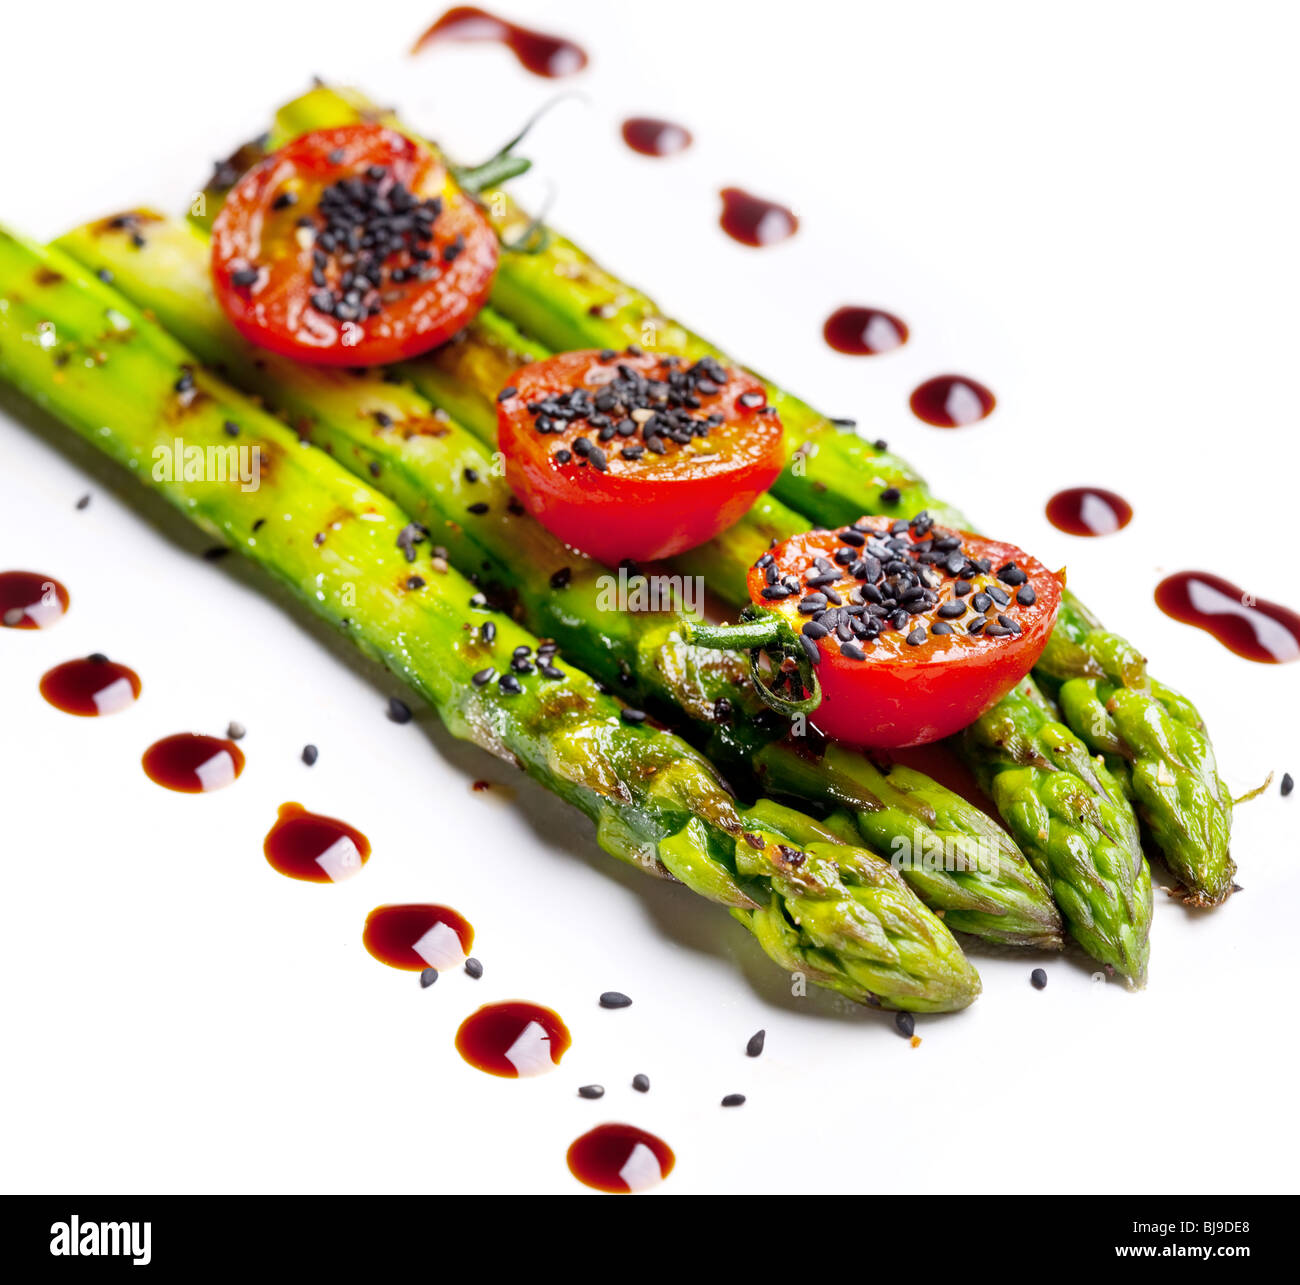 Fried green asparagus on a white background - Stock Image